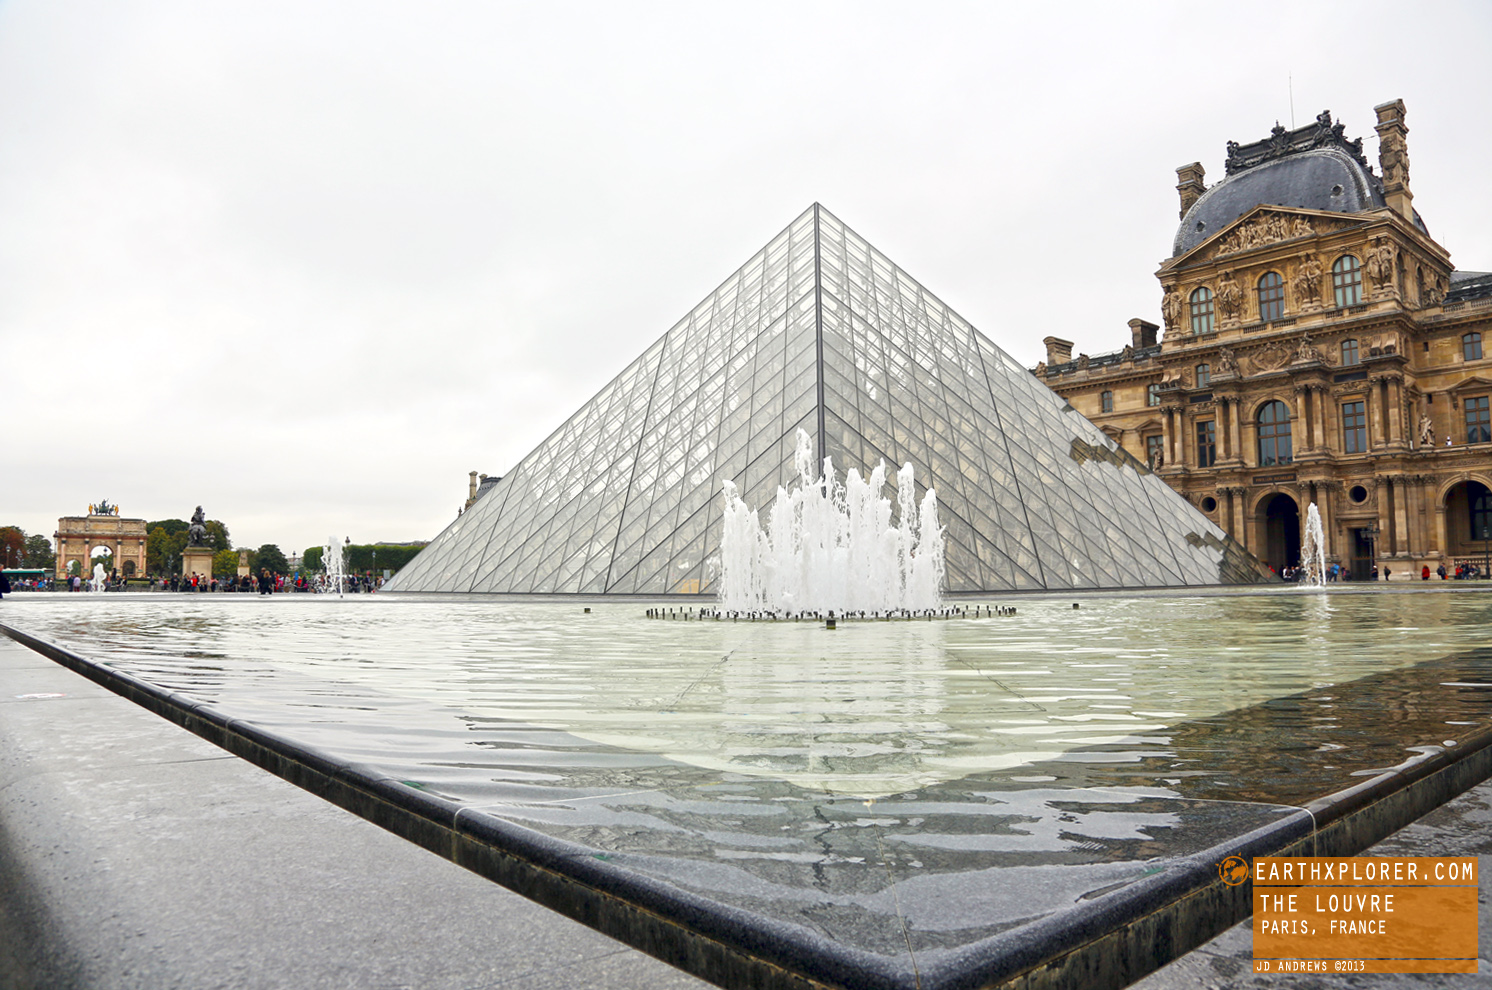 One of the world's largest museums and it's a historic monument